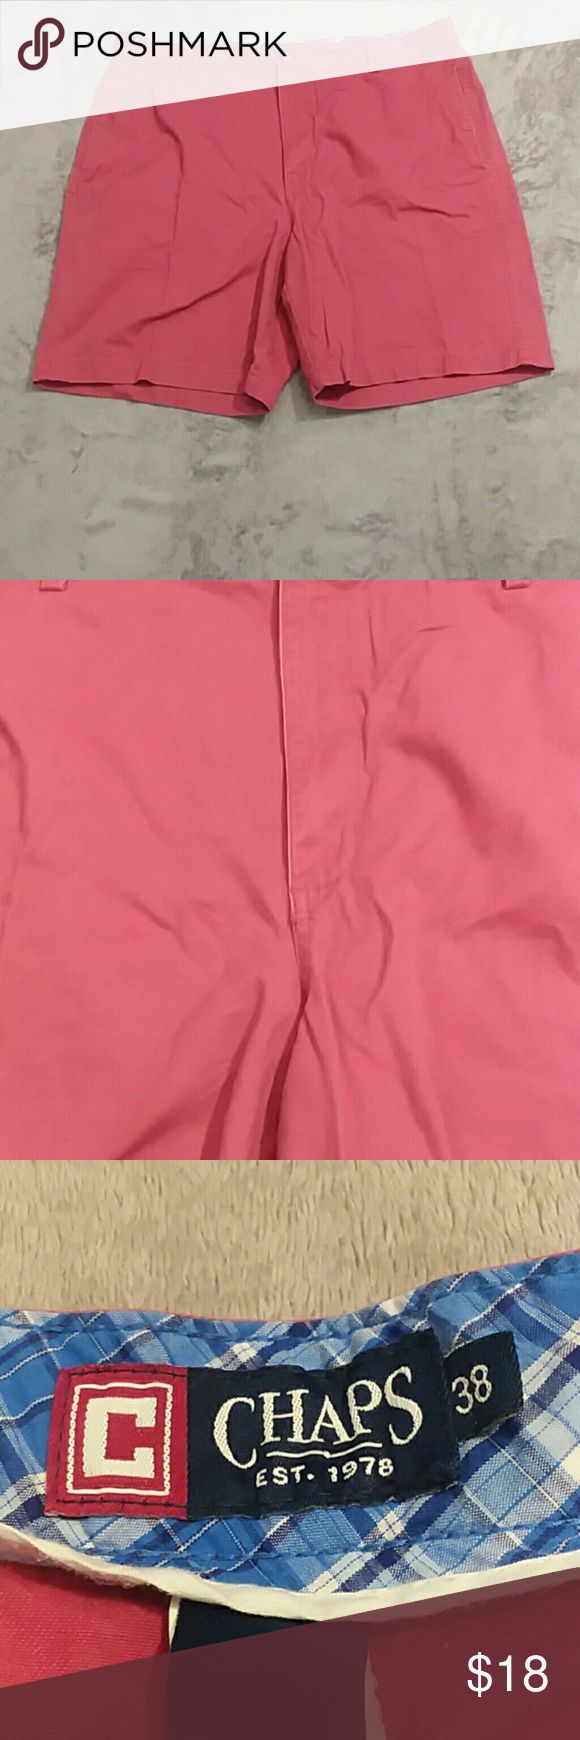 Chaps men's size 38 flat front red shorts Chaps men's size 38 flat front red shorts Chaps Shorts Flat Front